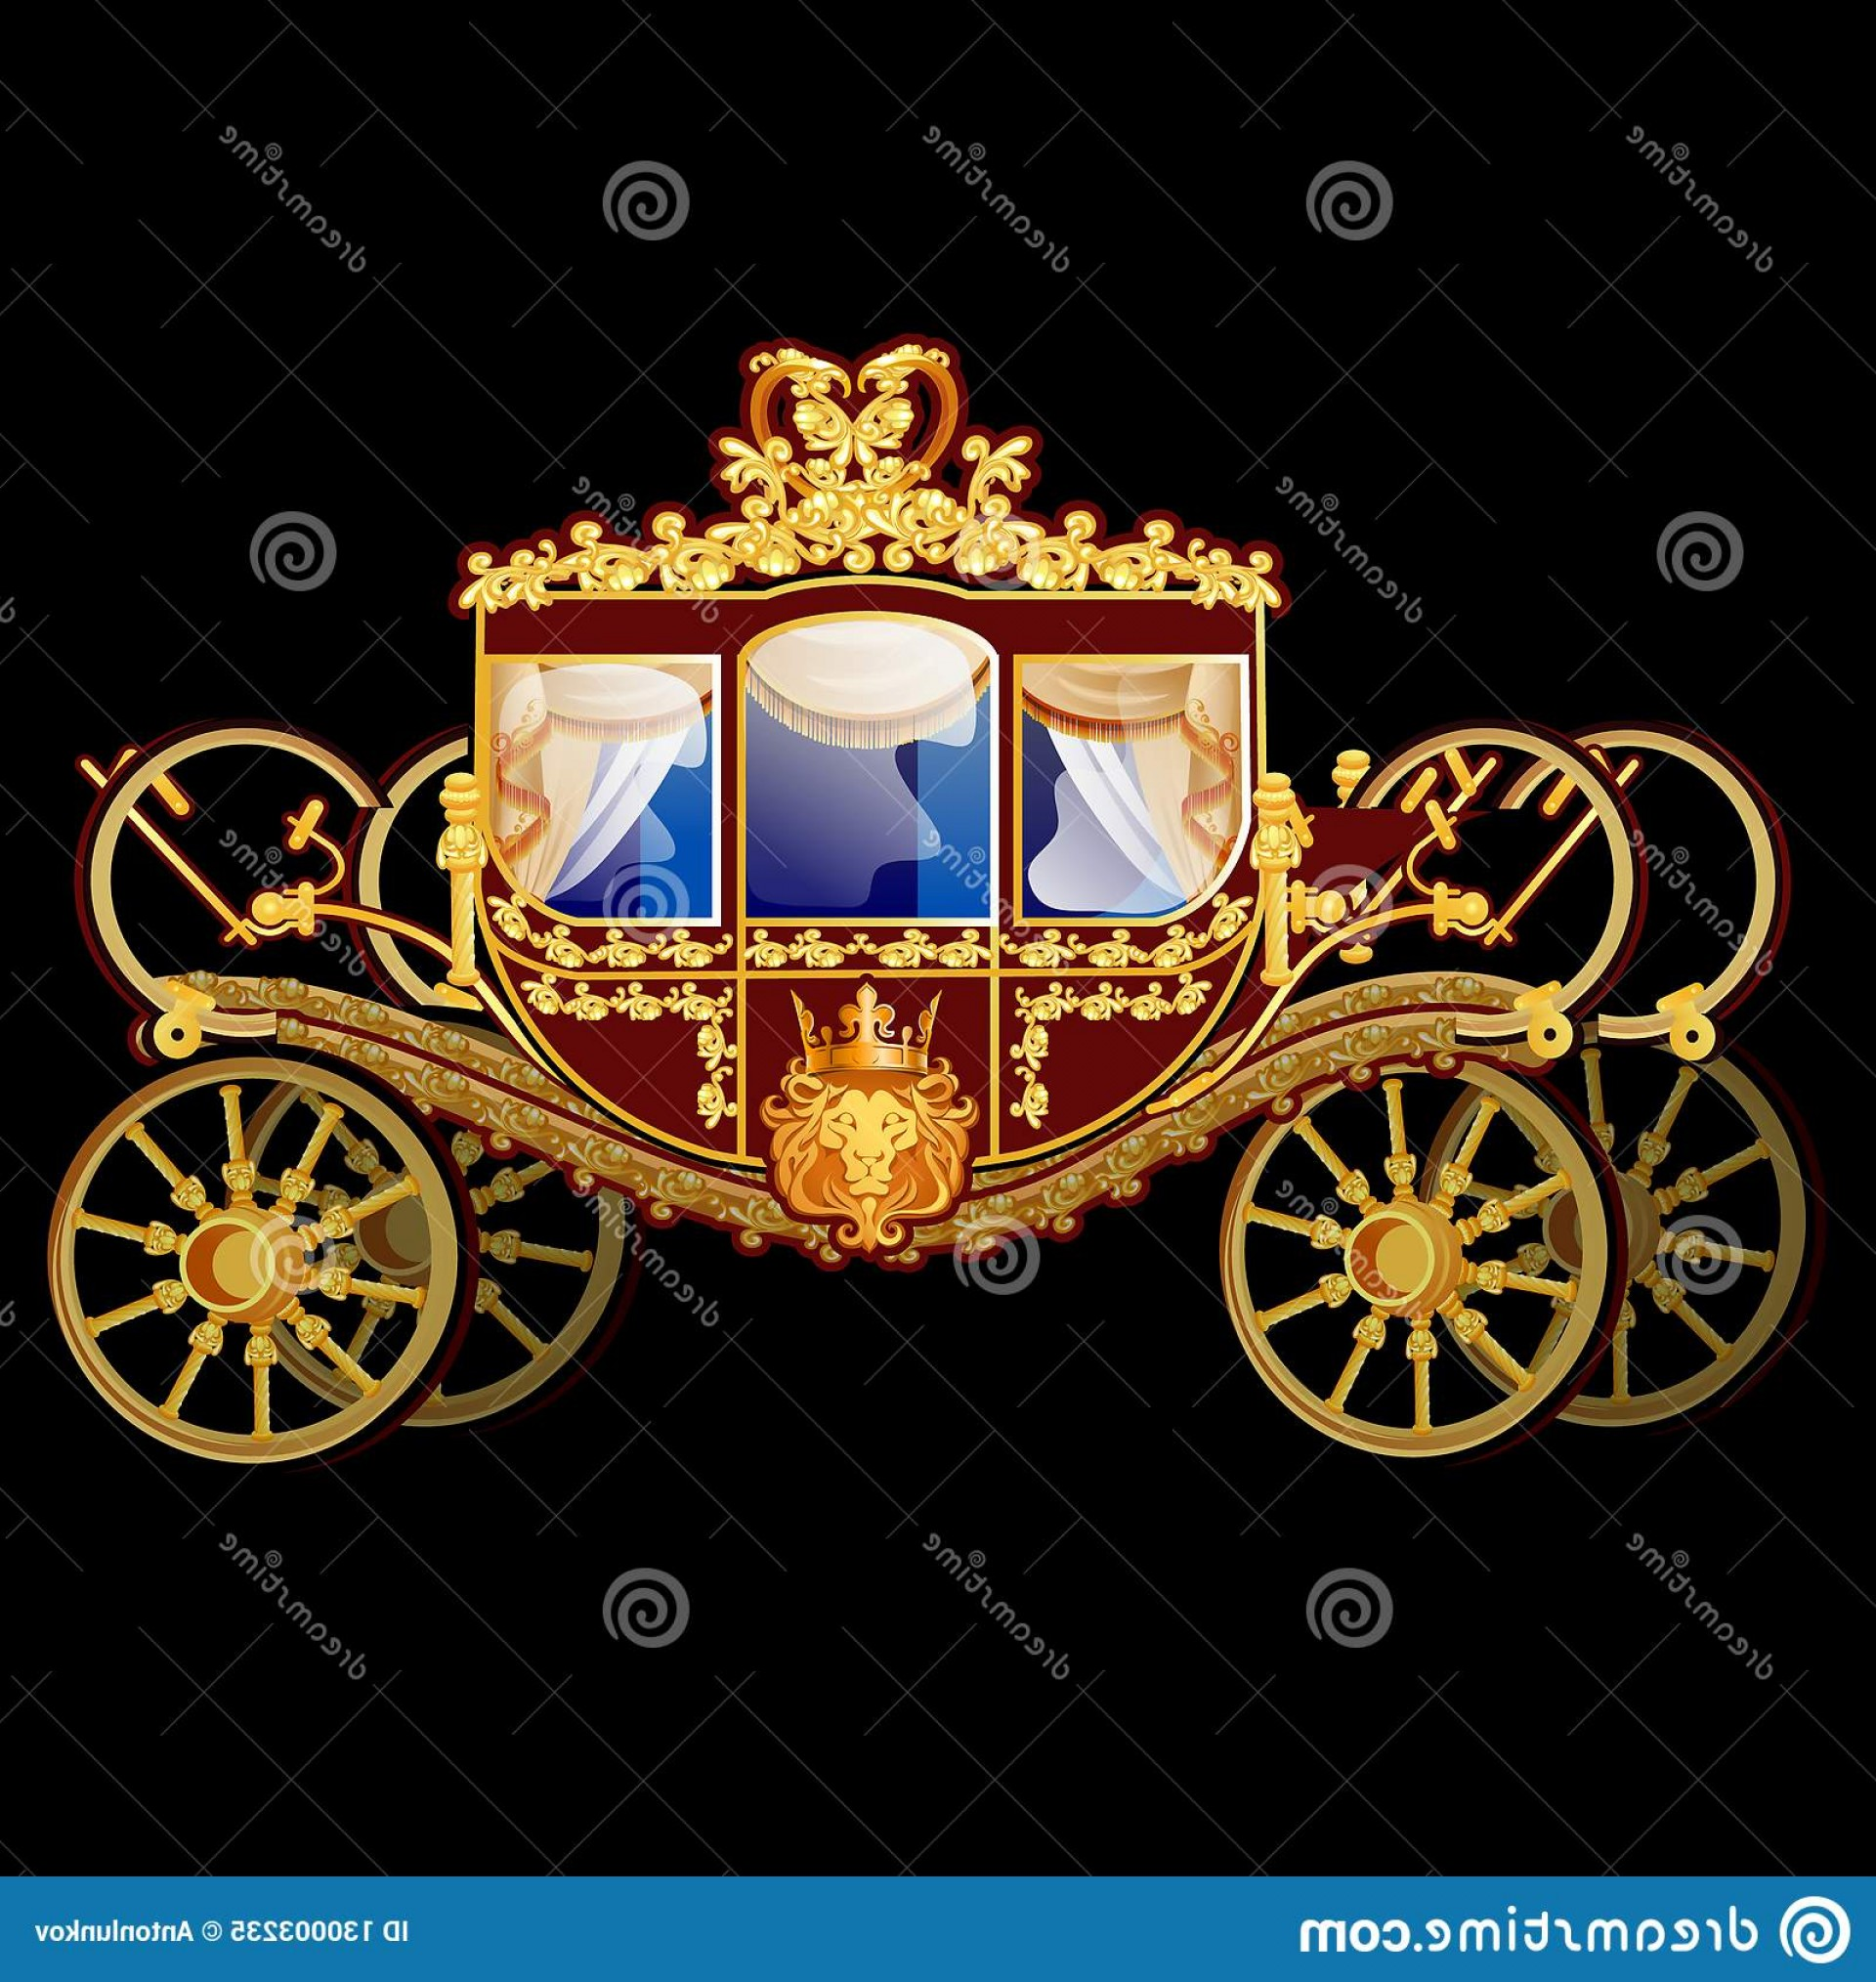 Coach Gold Logo Vector: Vintage Horse Carriage Golden Florid Ornament Isolated Black Background Vector Illustration Image